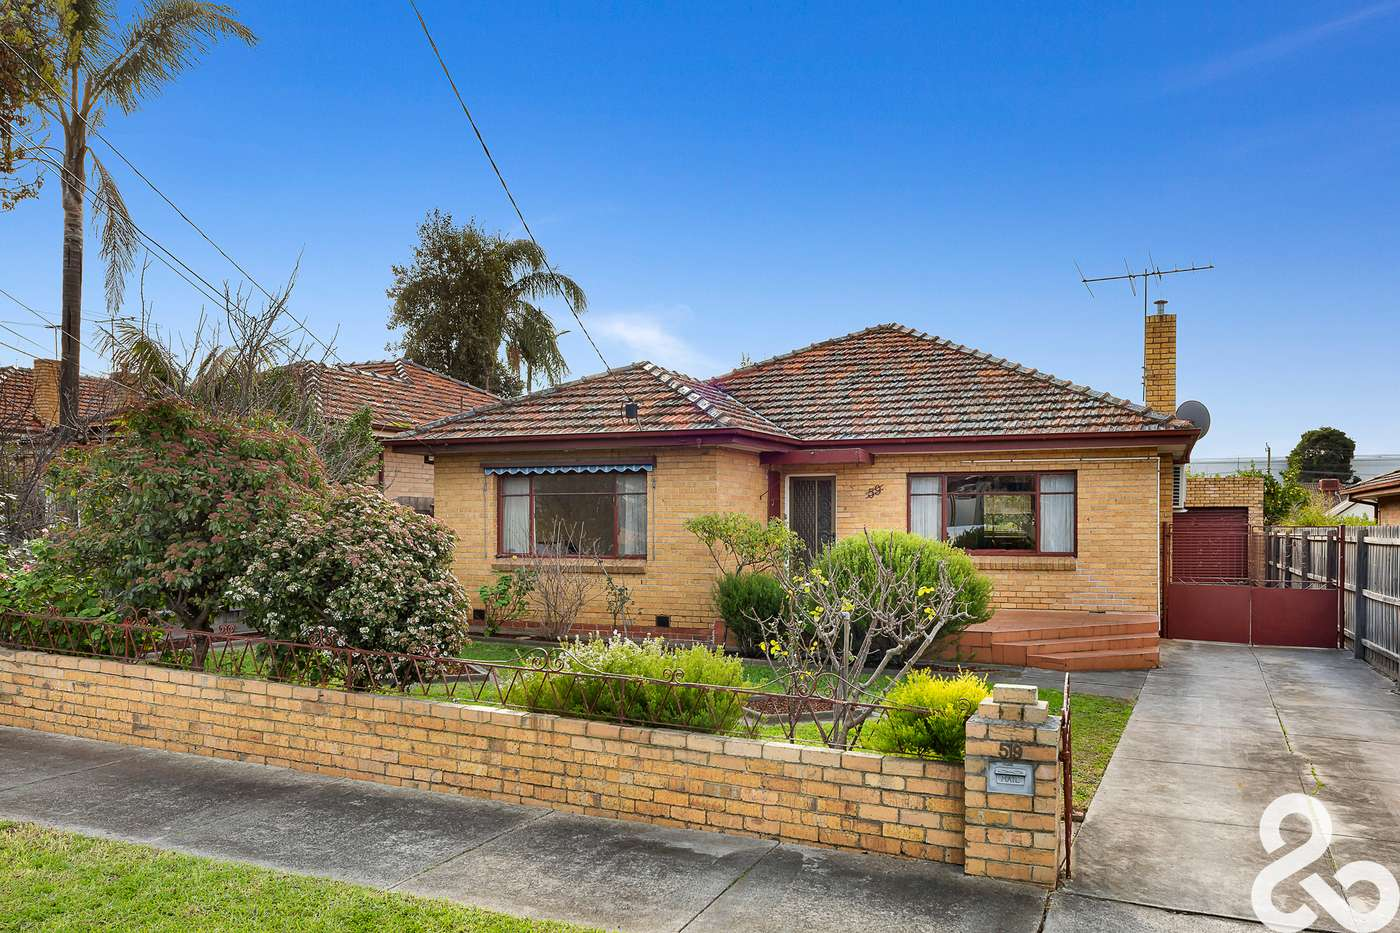 Main view of Homely house listing, 59 Alston Street, Thornbury, VIC 3071